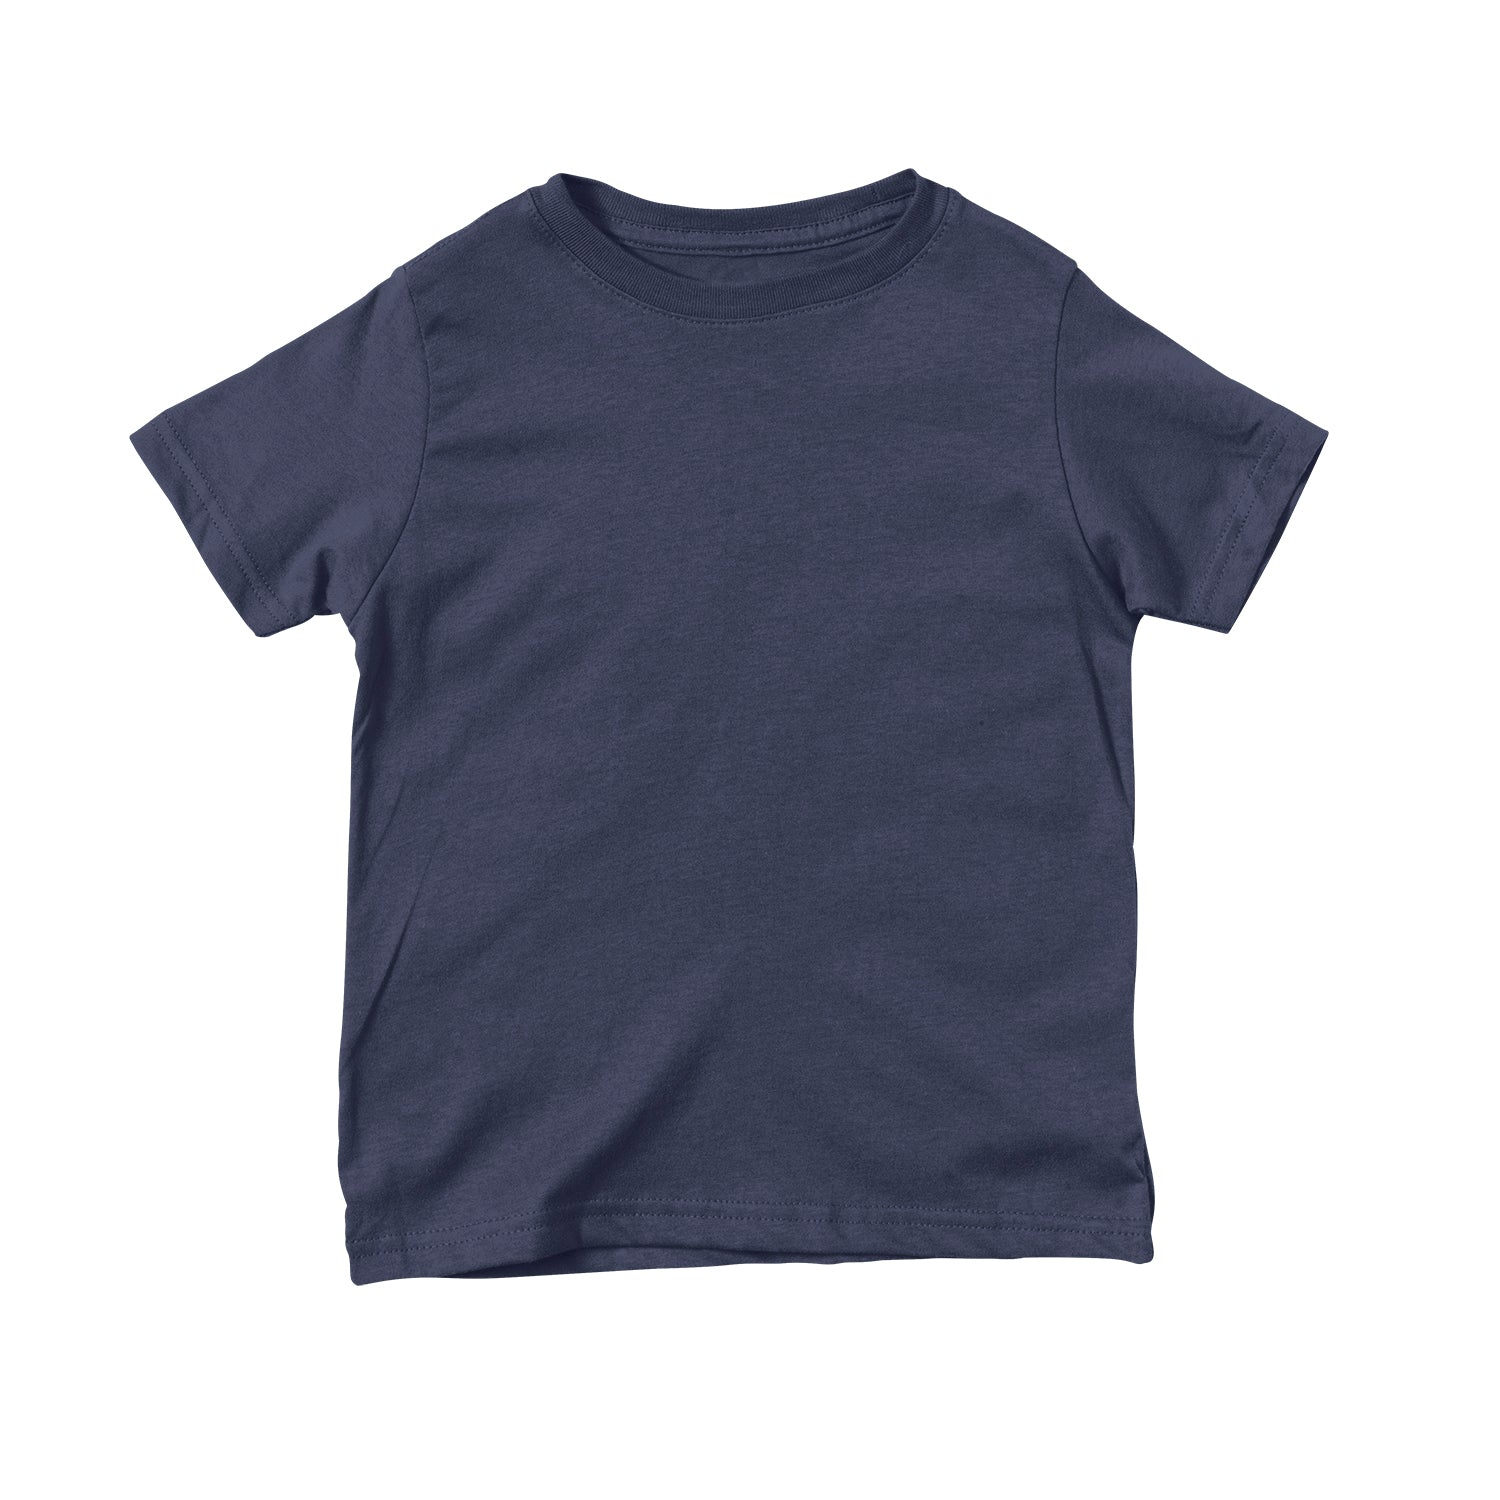 20474T - Toddler Ringspun Tee